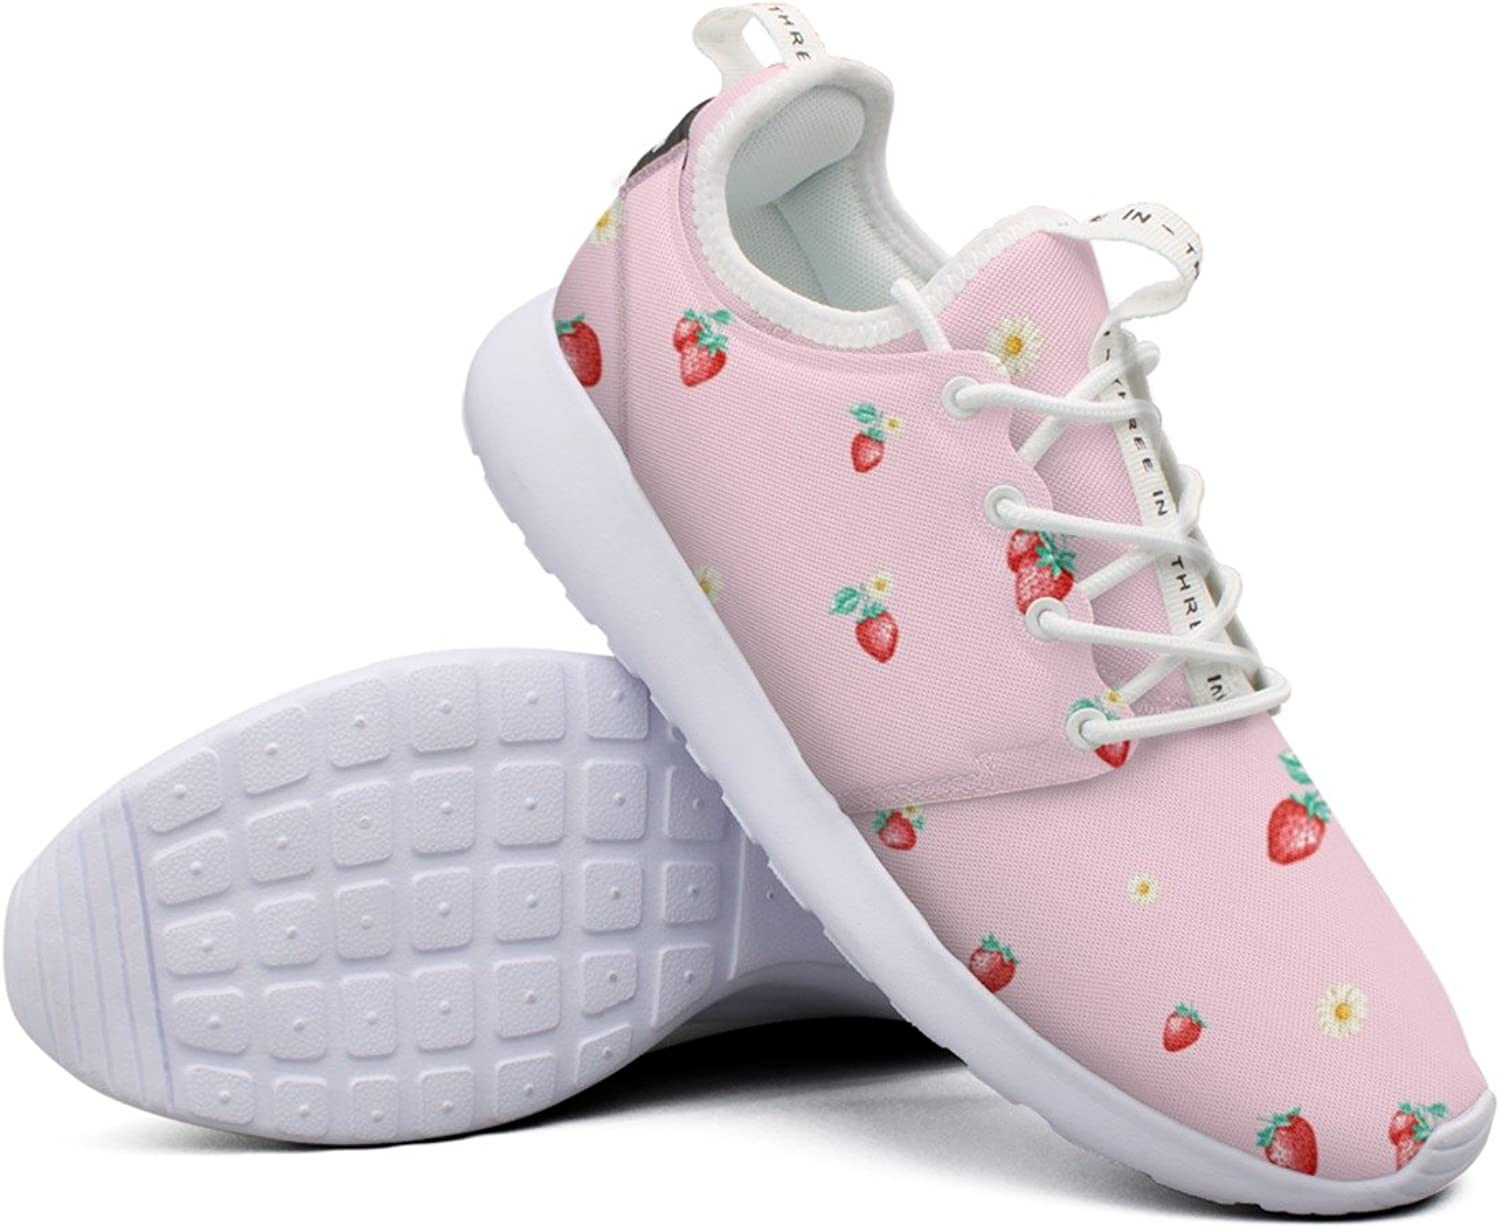 Attractive Women Freshly Picked Strawberries colorful Camping Funny Fashion Running shoes